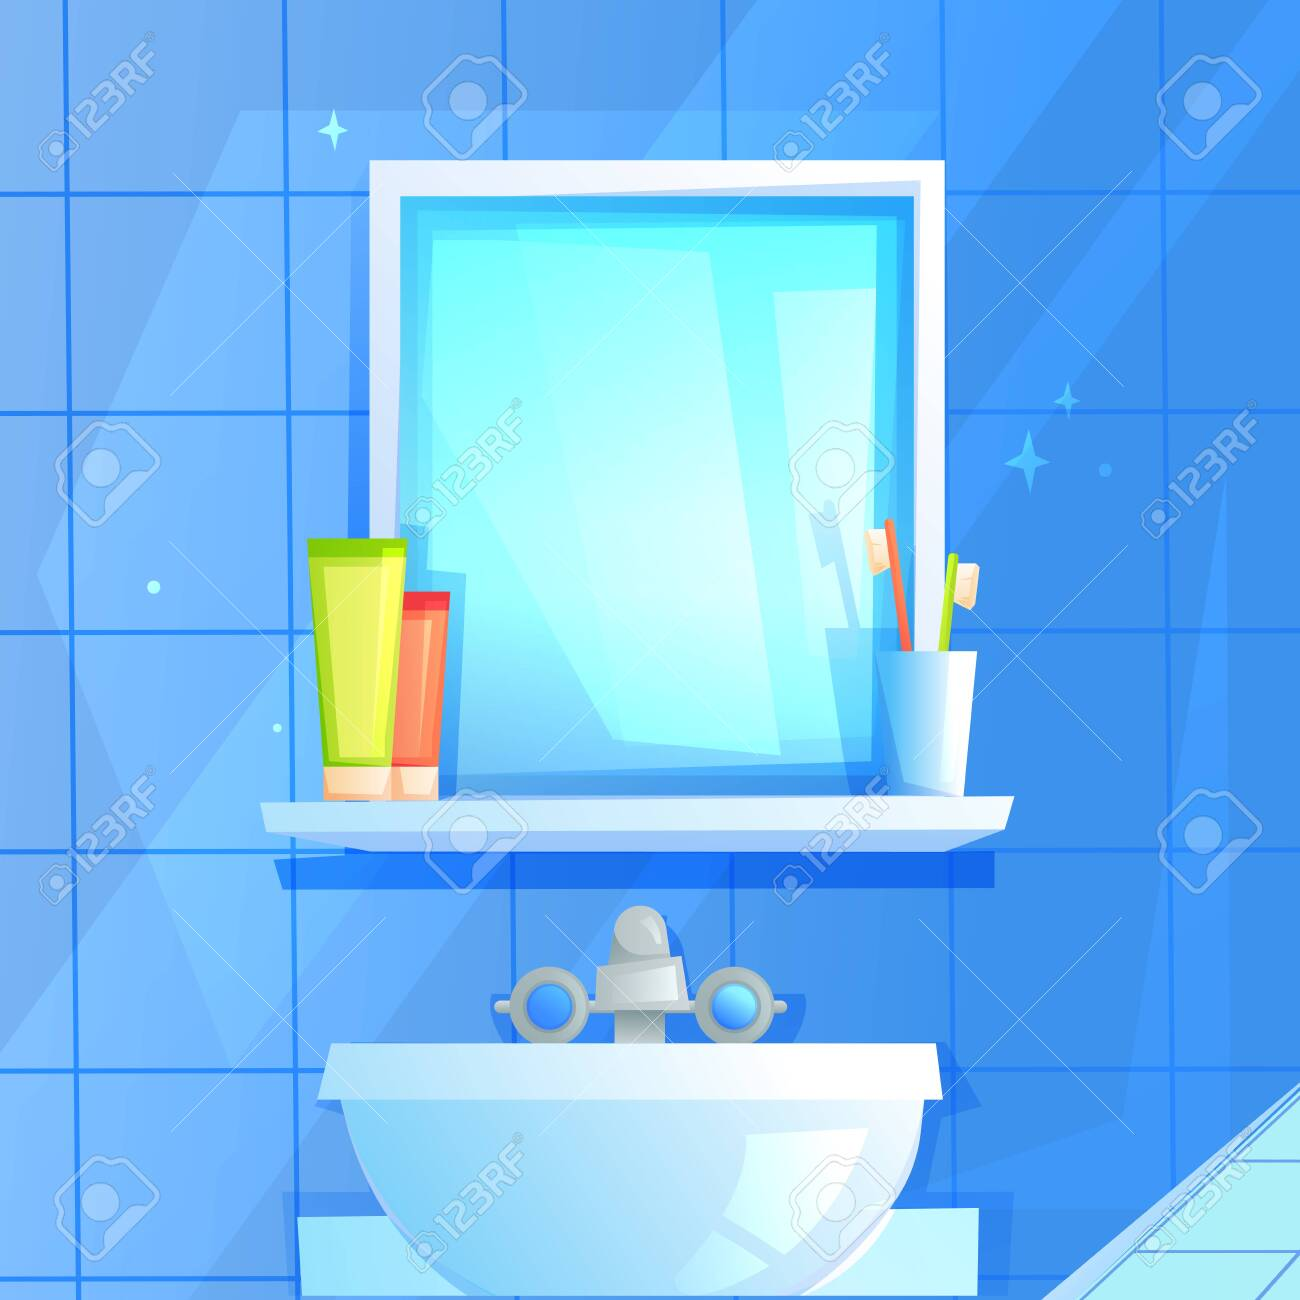 Mirror with a shelf on which a glass, toothpaste and brush. On the background of blue tiles. - 123825191